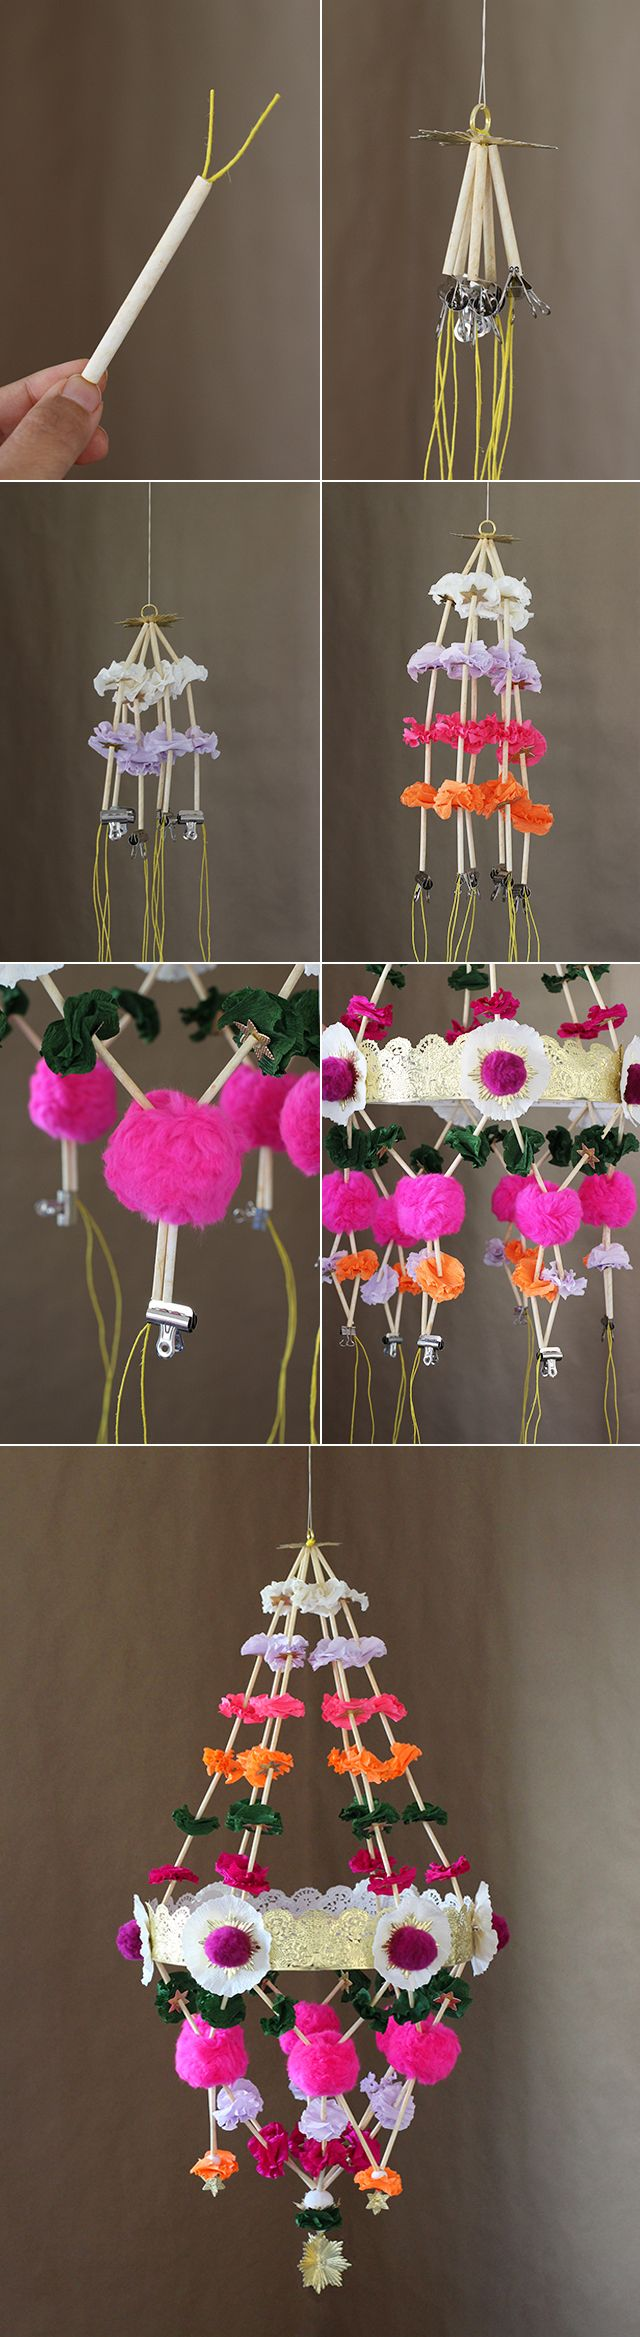 DIY Paper chandeliers, or pajaki, are a traditional Polish folk ... for Paper Chandelier Craft  26bof